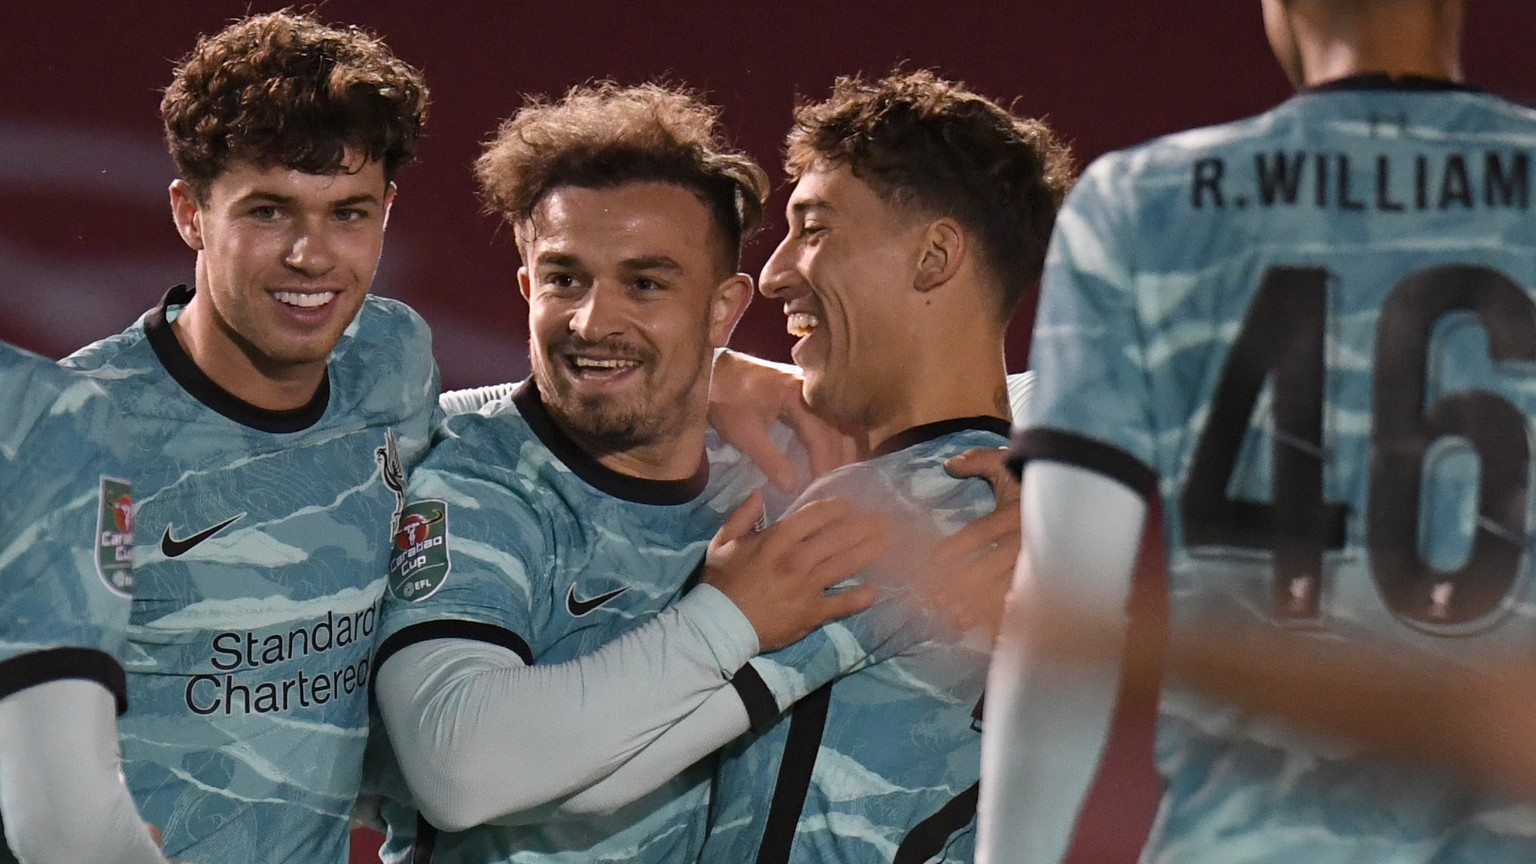 Liverpool's Xherdan Shaqiri, at centre, celebrates with teammates after scoring the opening goal of the game during the English League Cup third round soccer match between Lincoln City and Liverpool at the LNER stadium, Lincoln, England, Thursday, Sept. 24, 2020. (Peter Powell, Pool via AP)